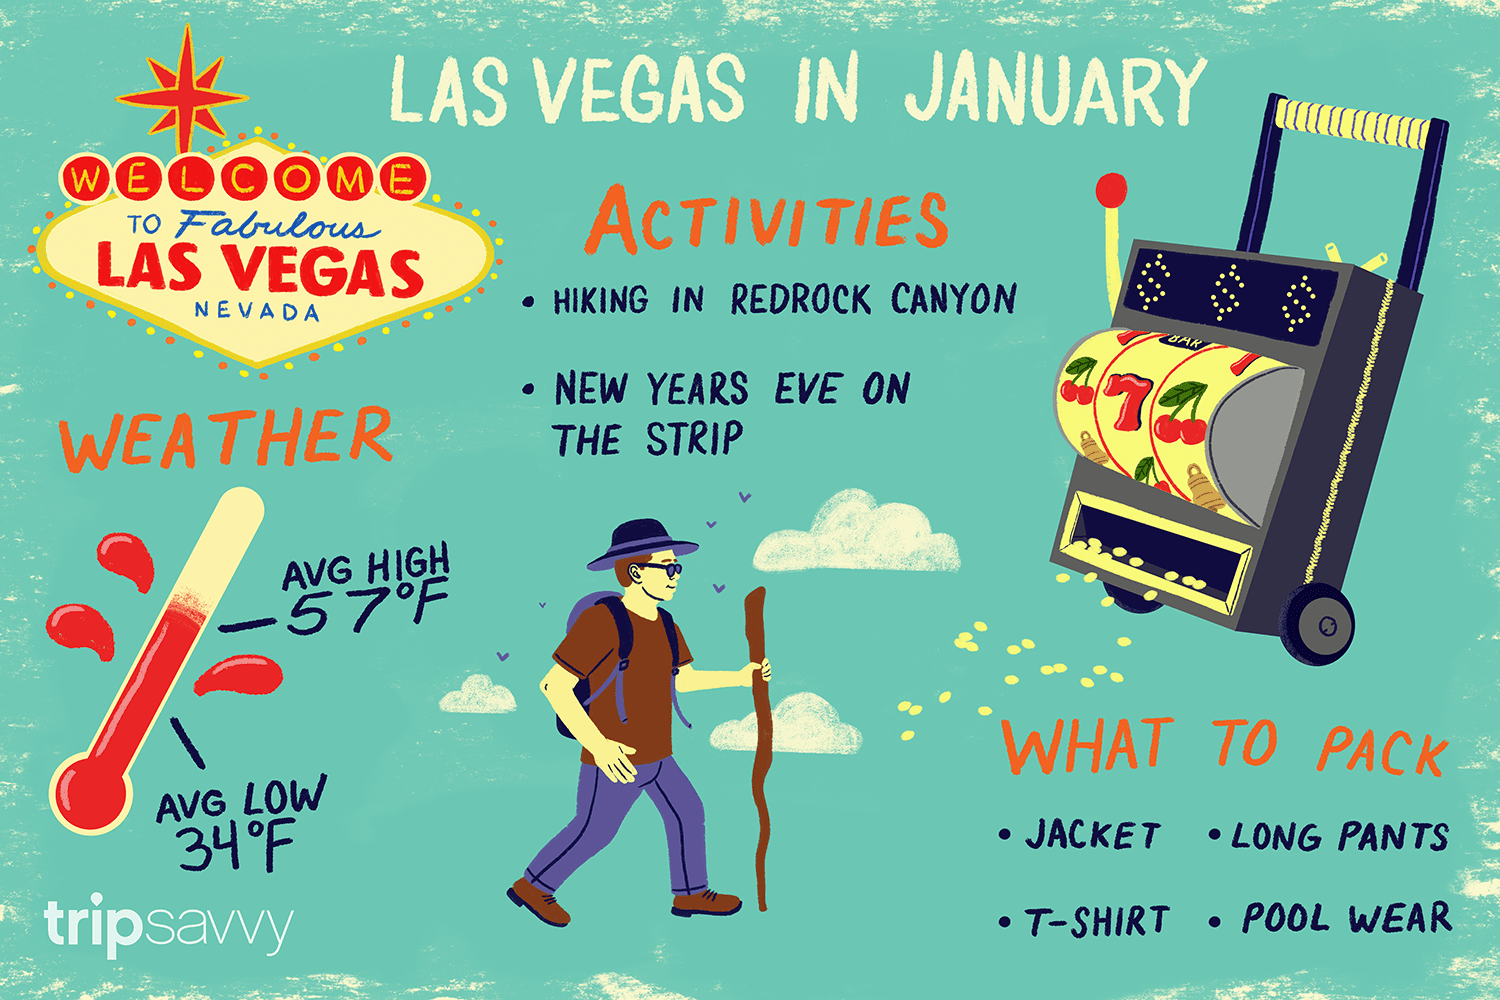 January In Las Vegas Weather And Event Guide